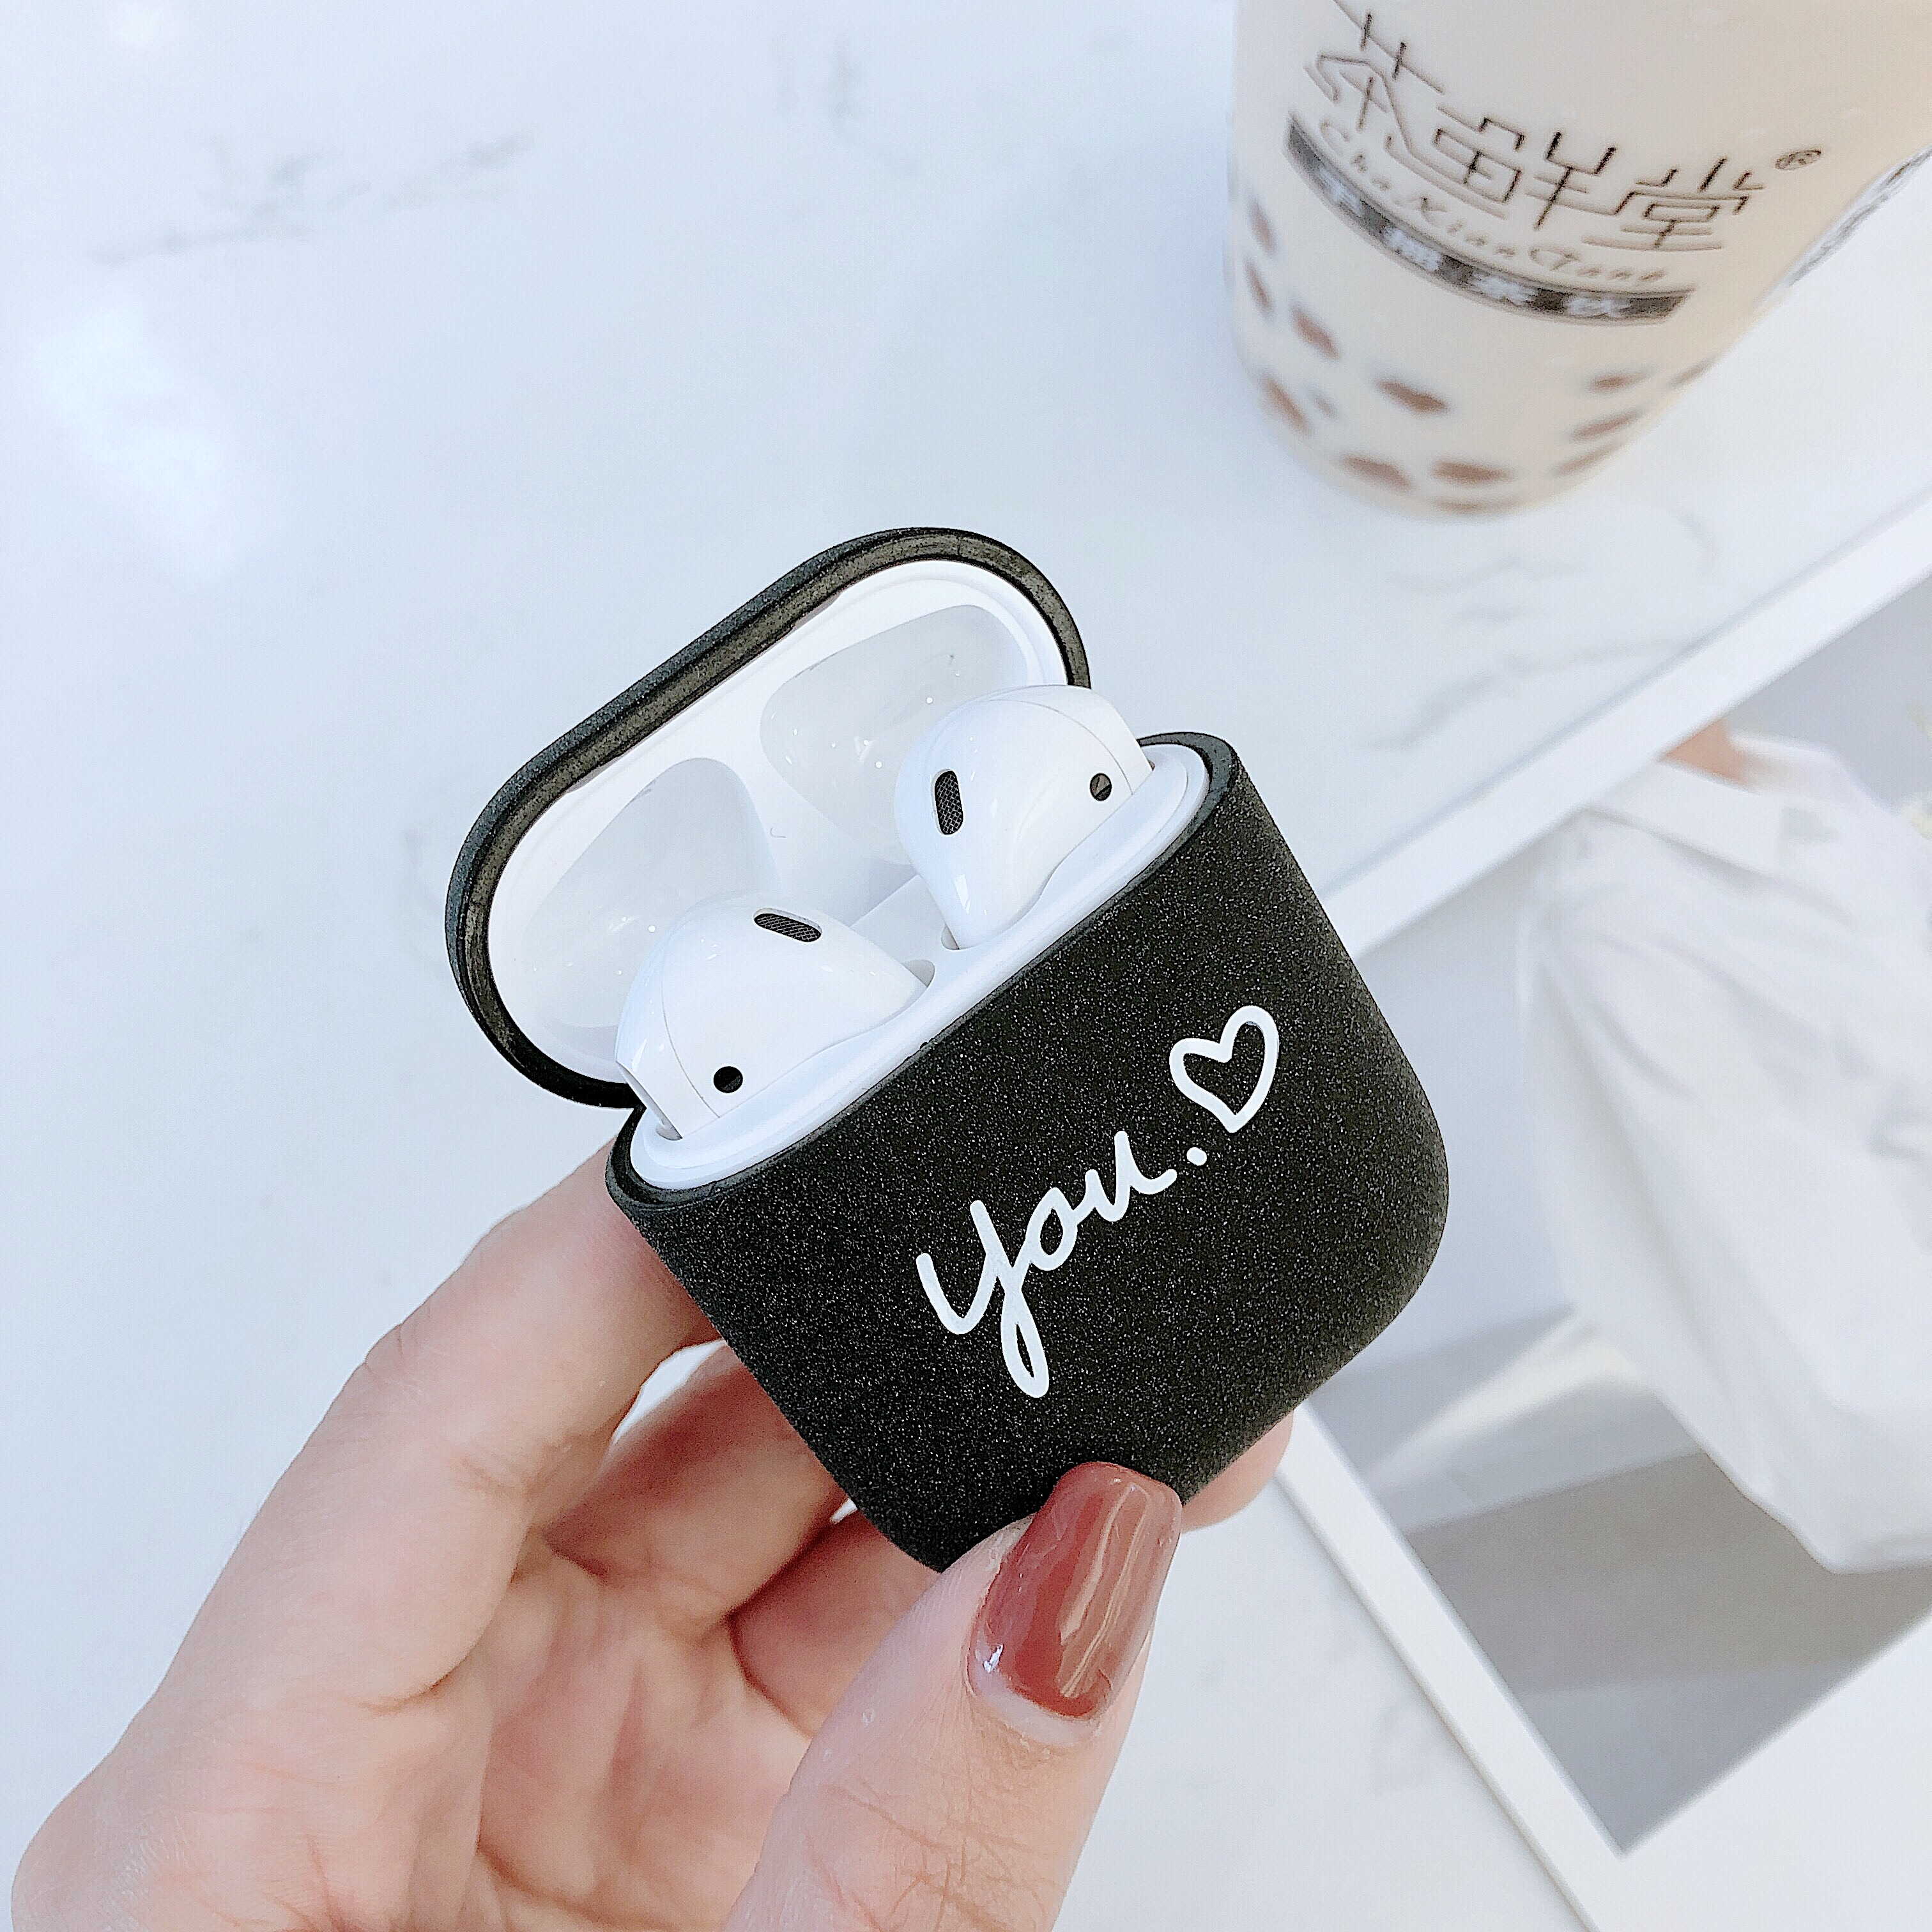 Купить с кэшбэком Hard Cate Earphone Case For Airpods Shockproof Cover For Airpods 2 Matte Pink Black Charging Box Accessories Protector  Case New